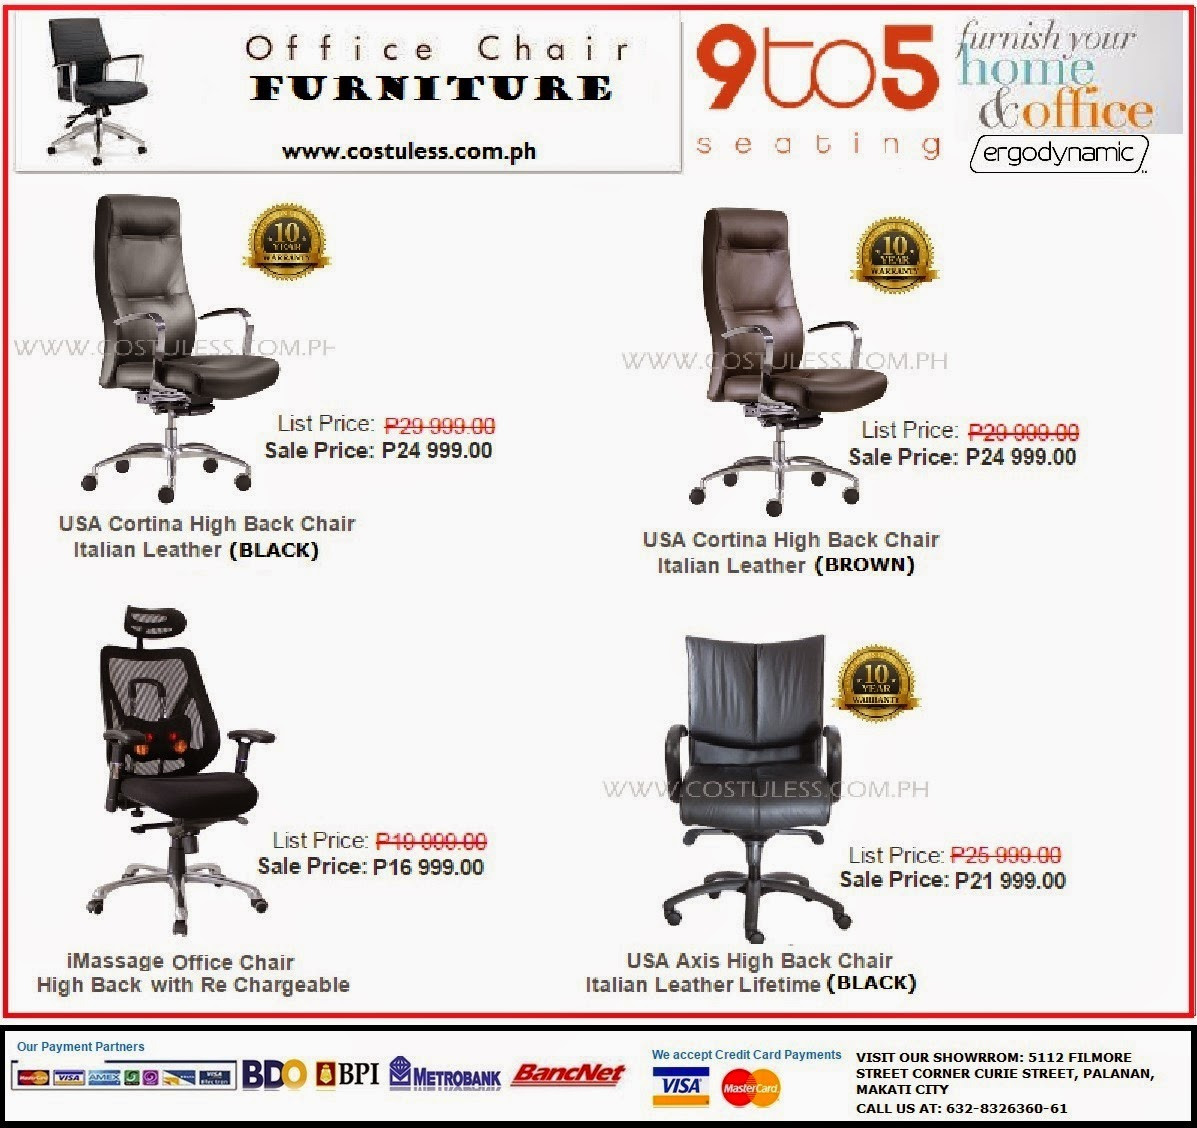 Cost u less office furniture manila furniture supplier for High end furniture for less